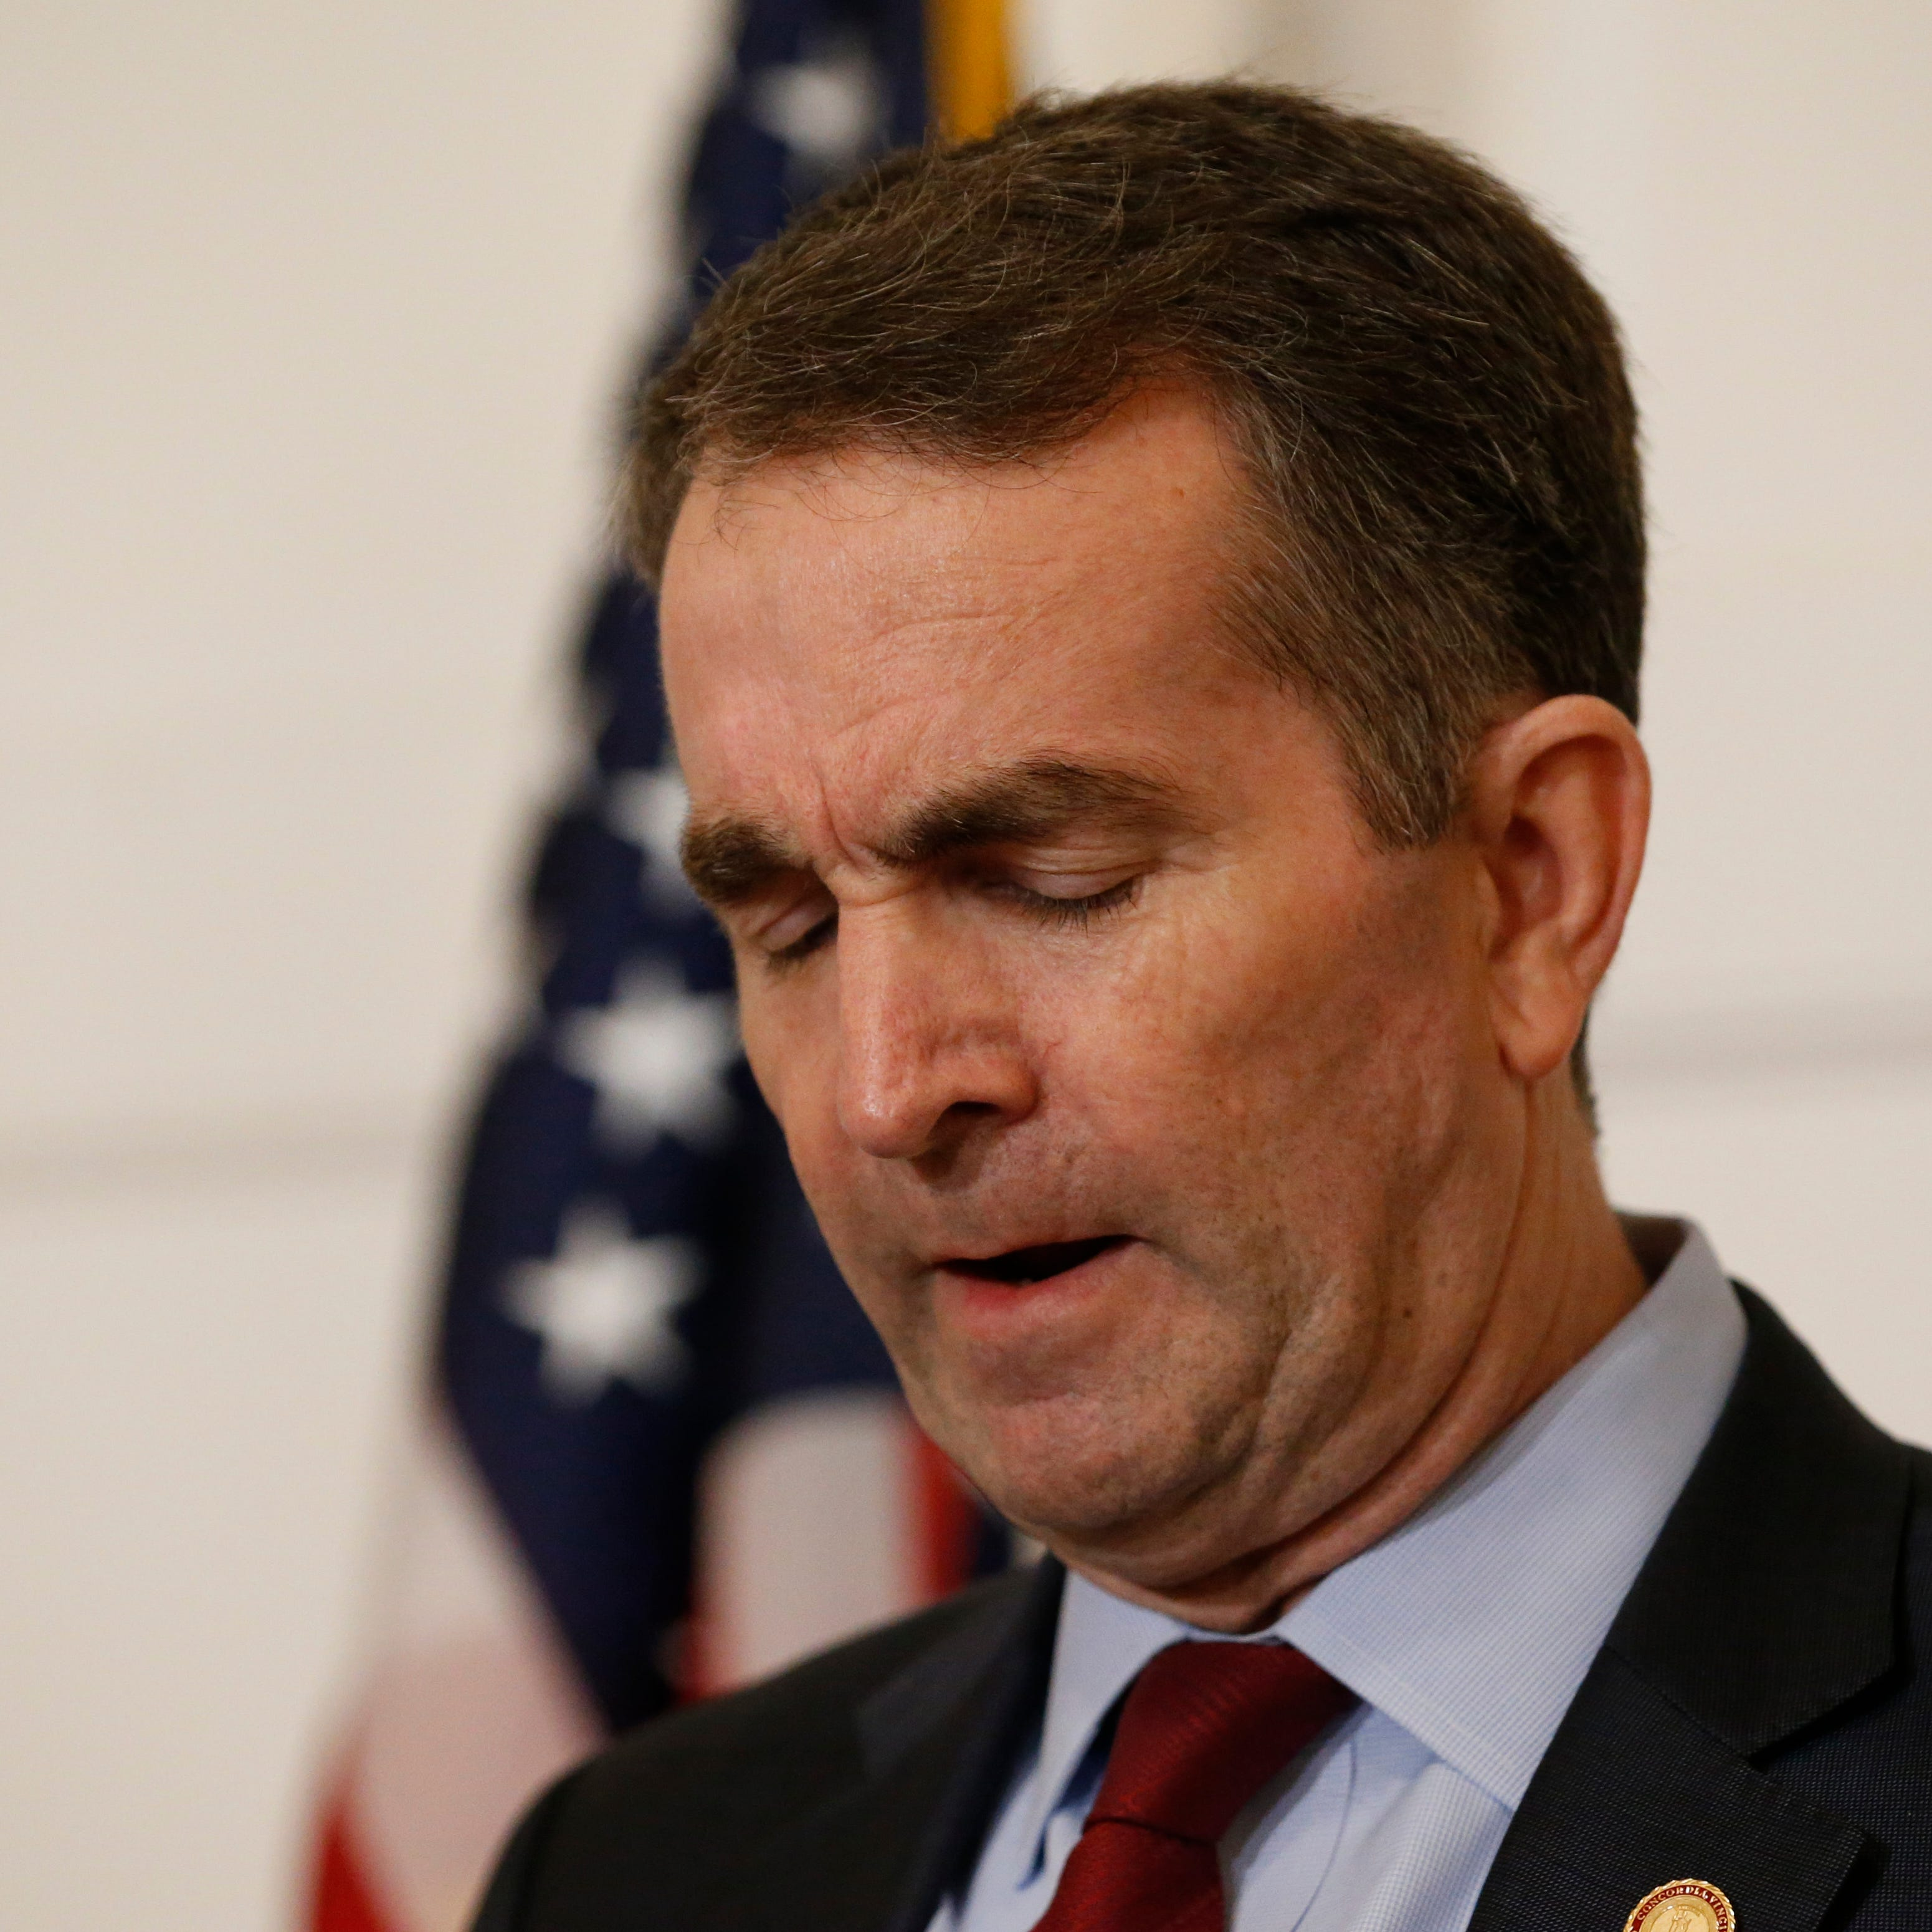 Was that Virginia Gov. Ralph Northam in blackface photo? Investigation inconclusive